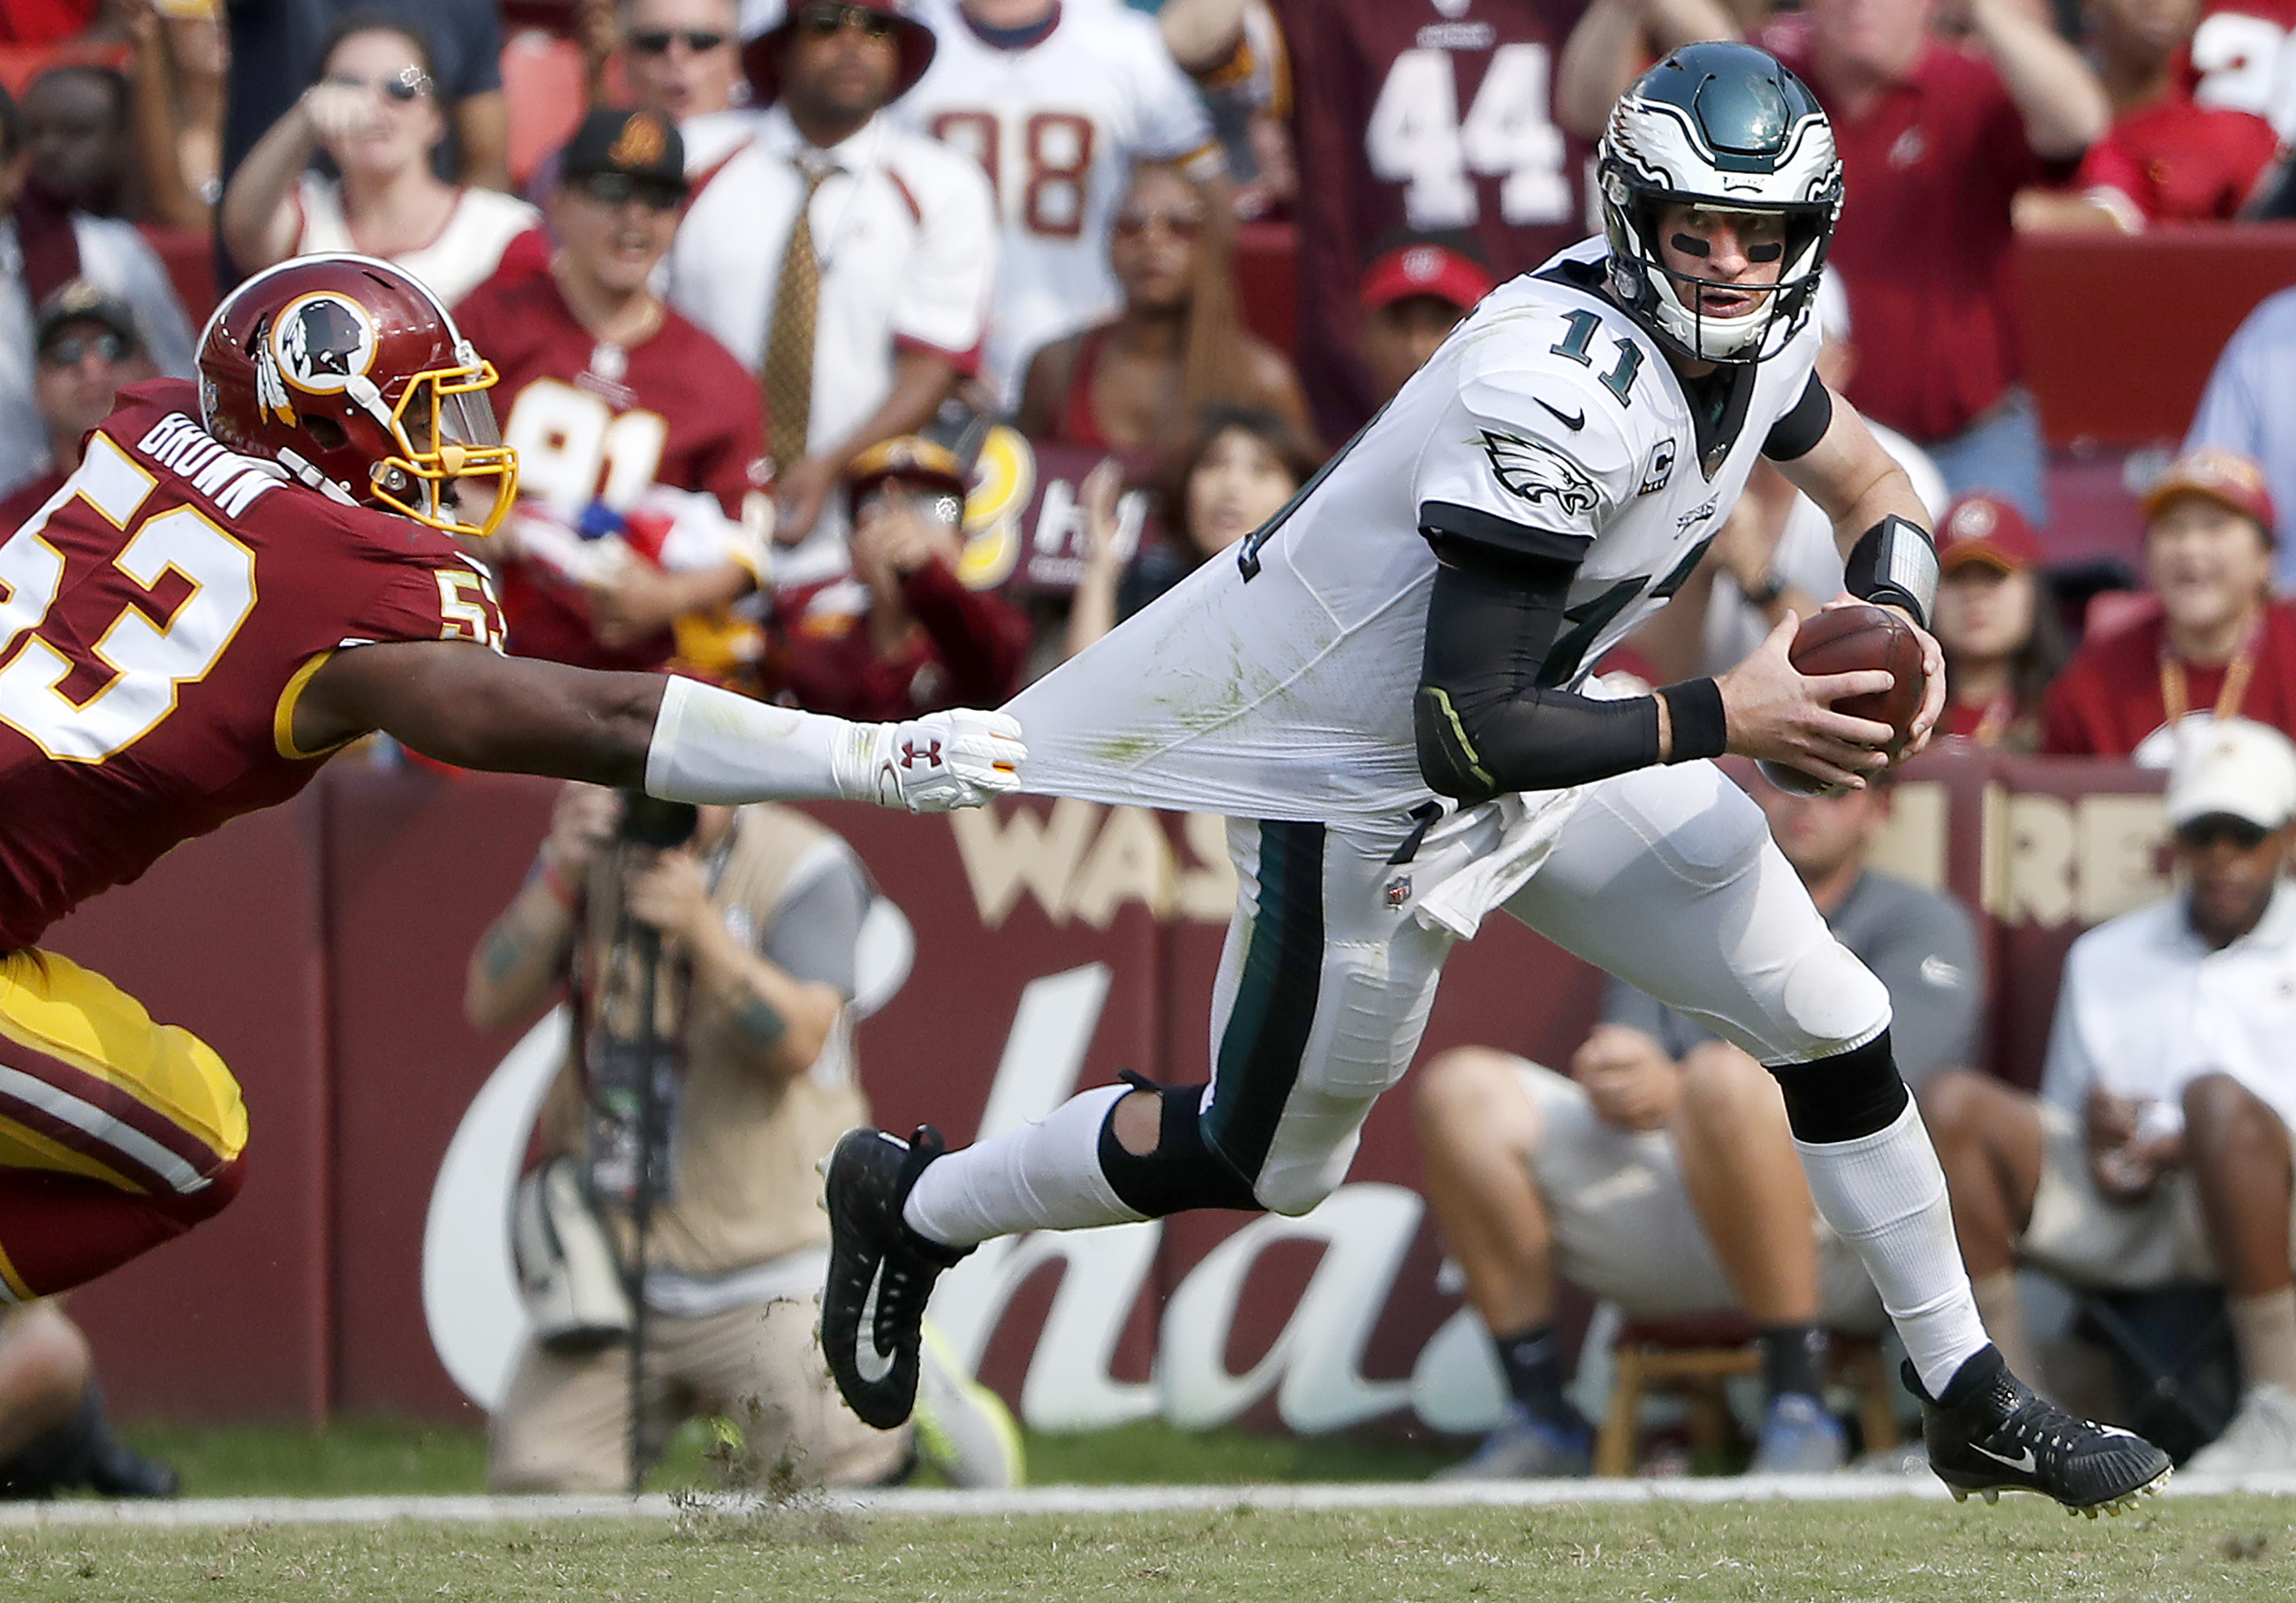 Eagles' Carson Wentz, scrambles away from the Redskins' Zach Brown.